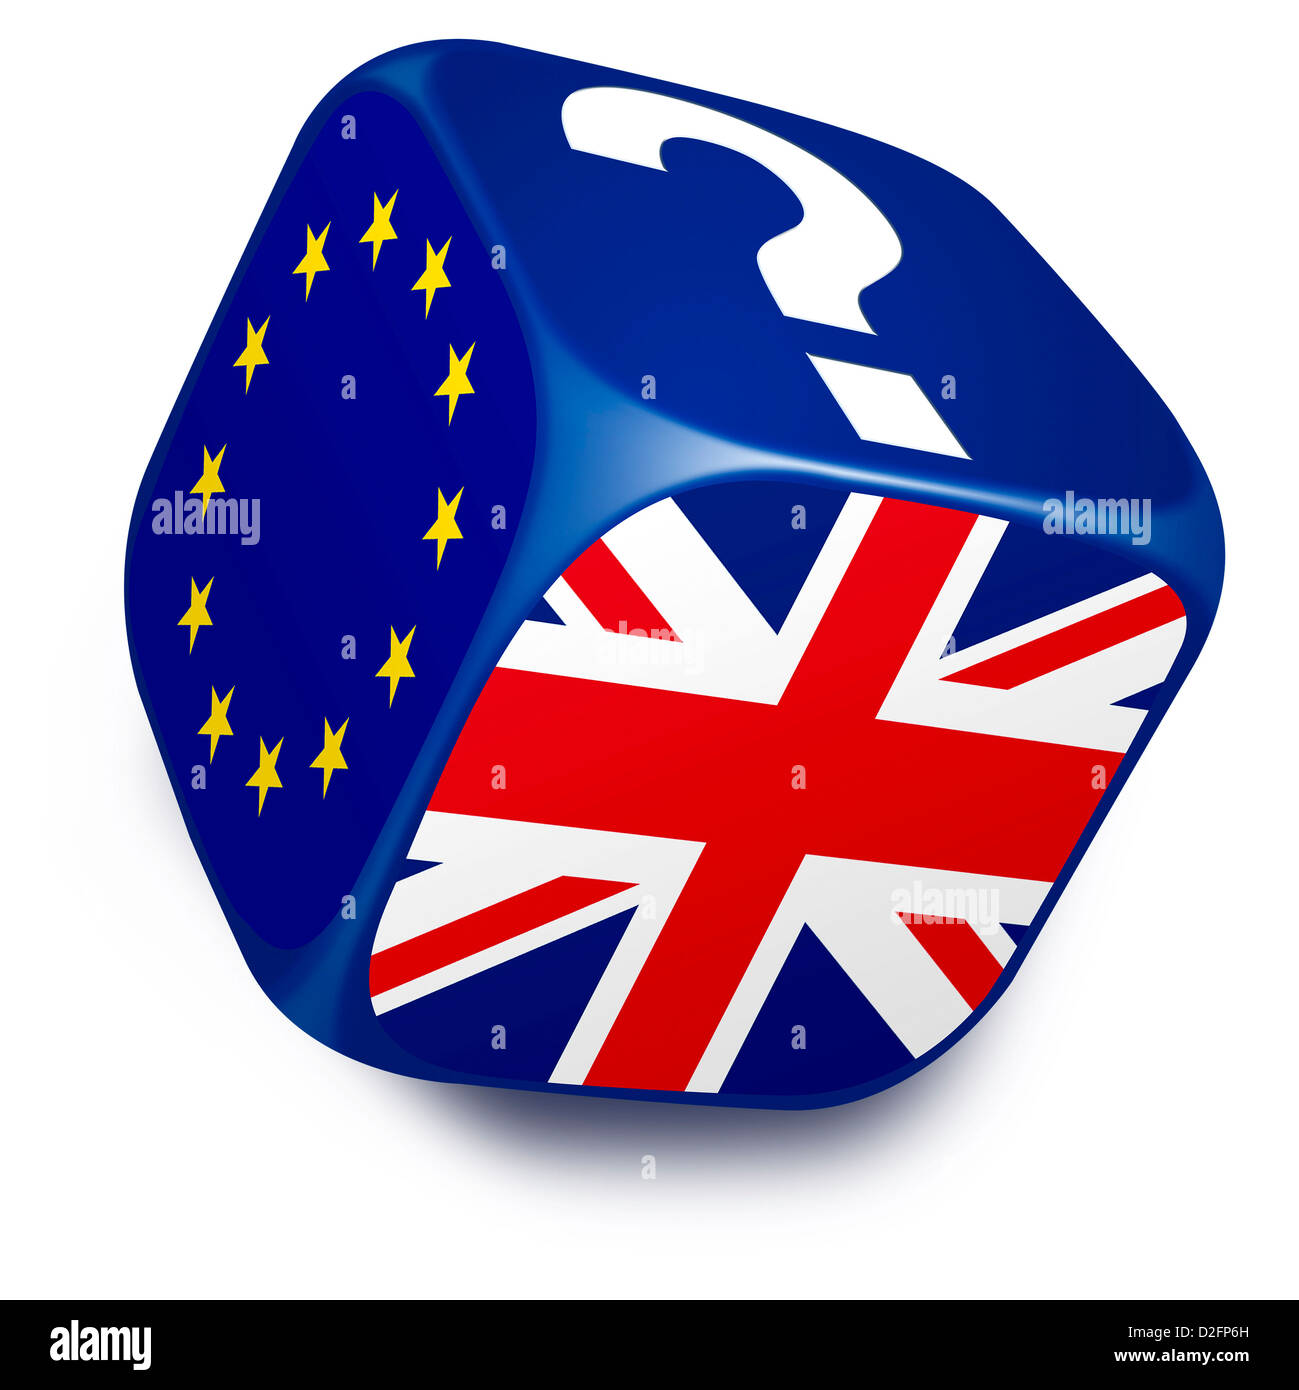 Dice with European Union Flag, UK flag and a question mark on its sides - Europe referendum vote choice concept Stock Photo